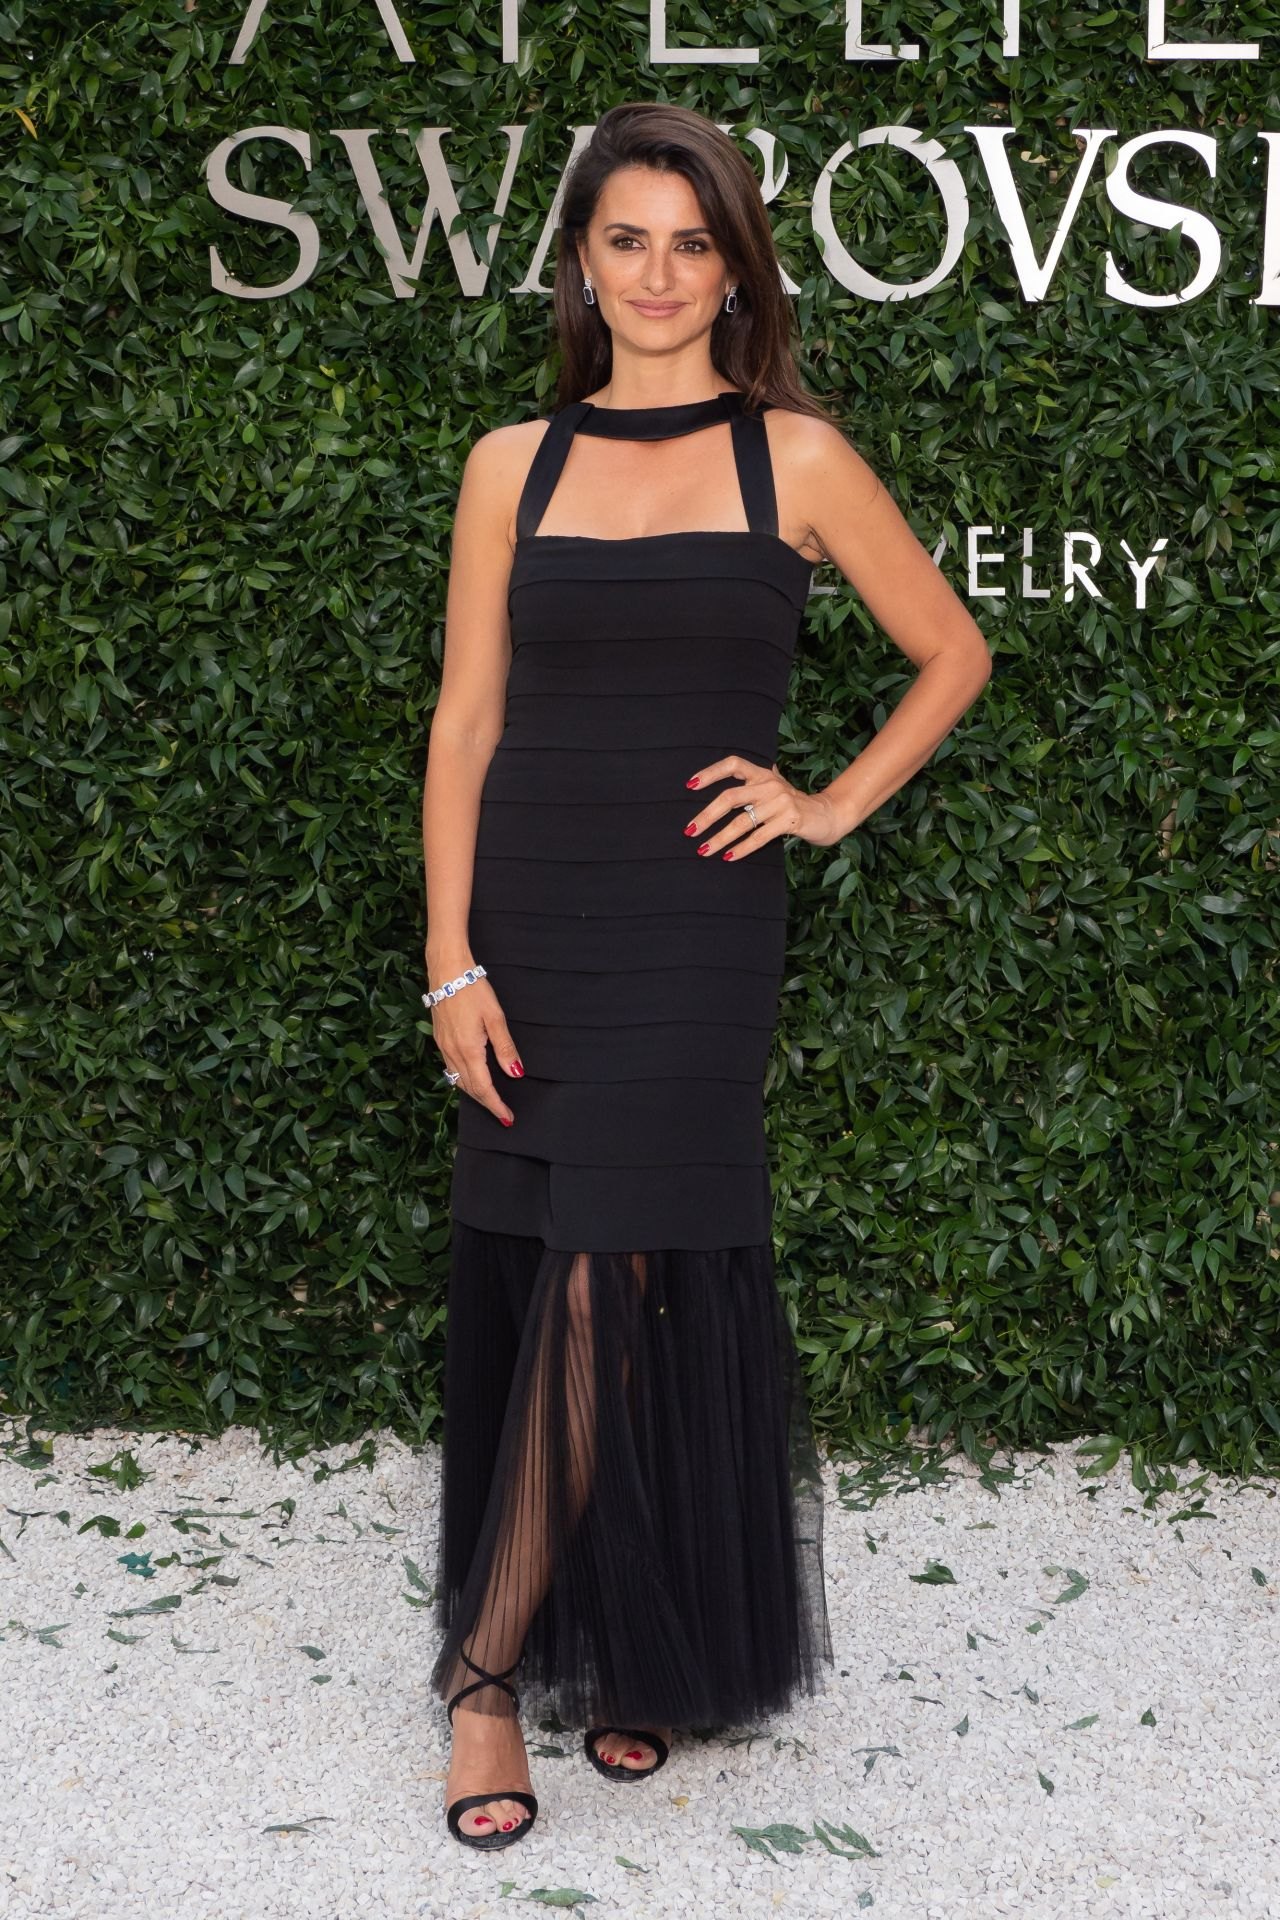 https://celebmafia.com/wp-content/uploads/2018/07/penelope-cruz-atelier-swarovski-cocktail-party-in-paris-07-02-2018-14.jpg